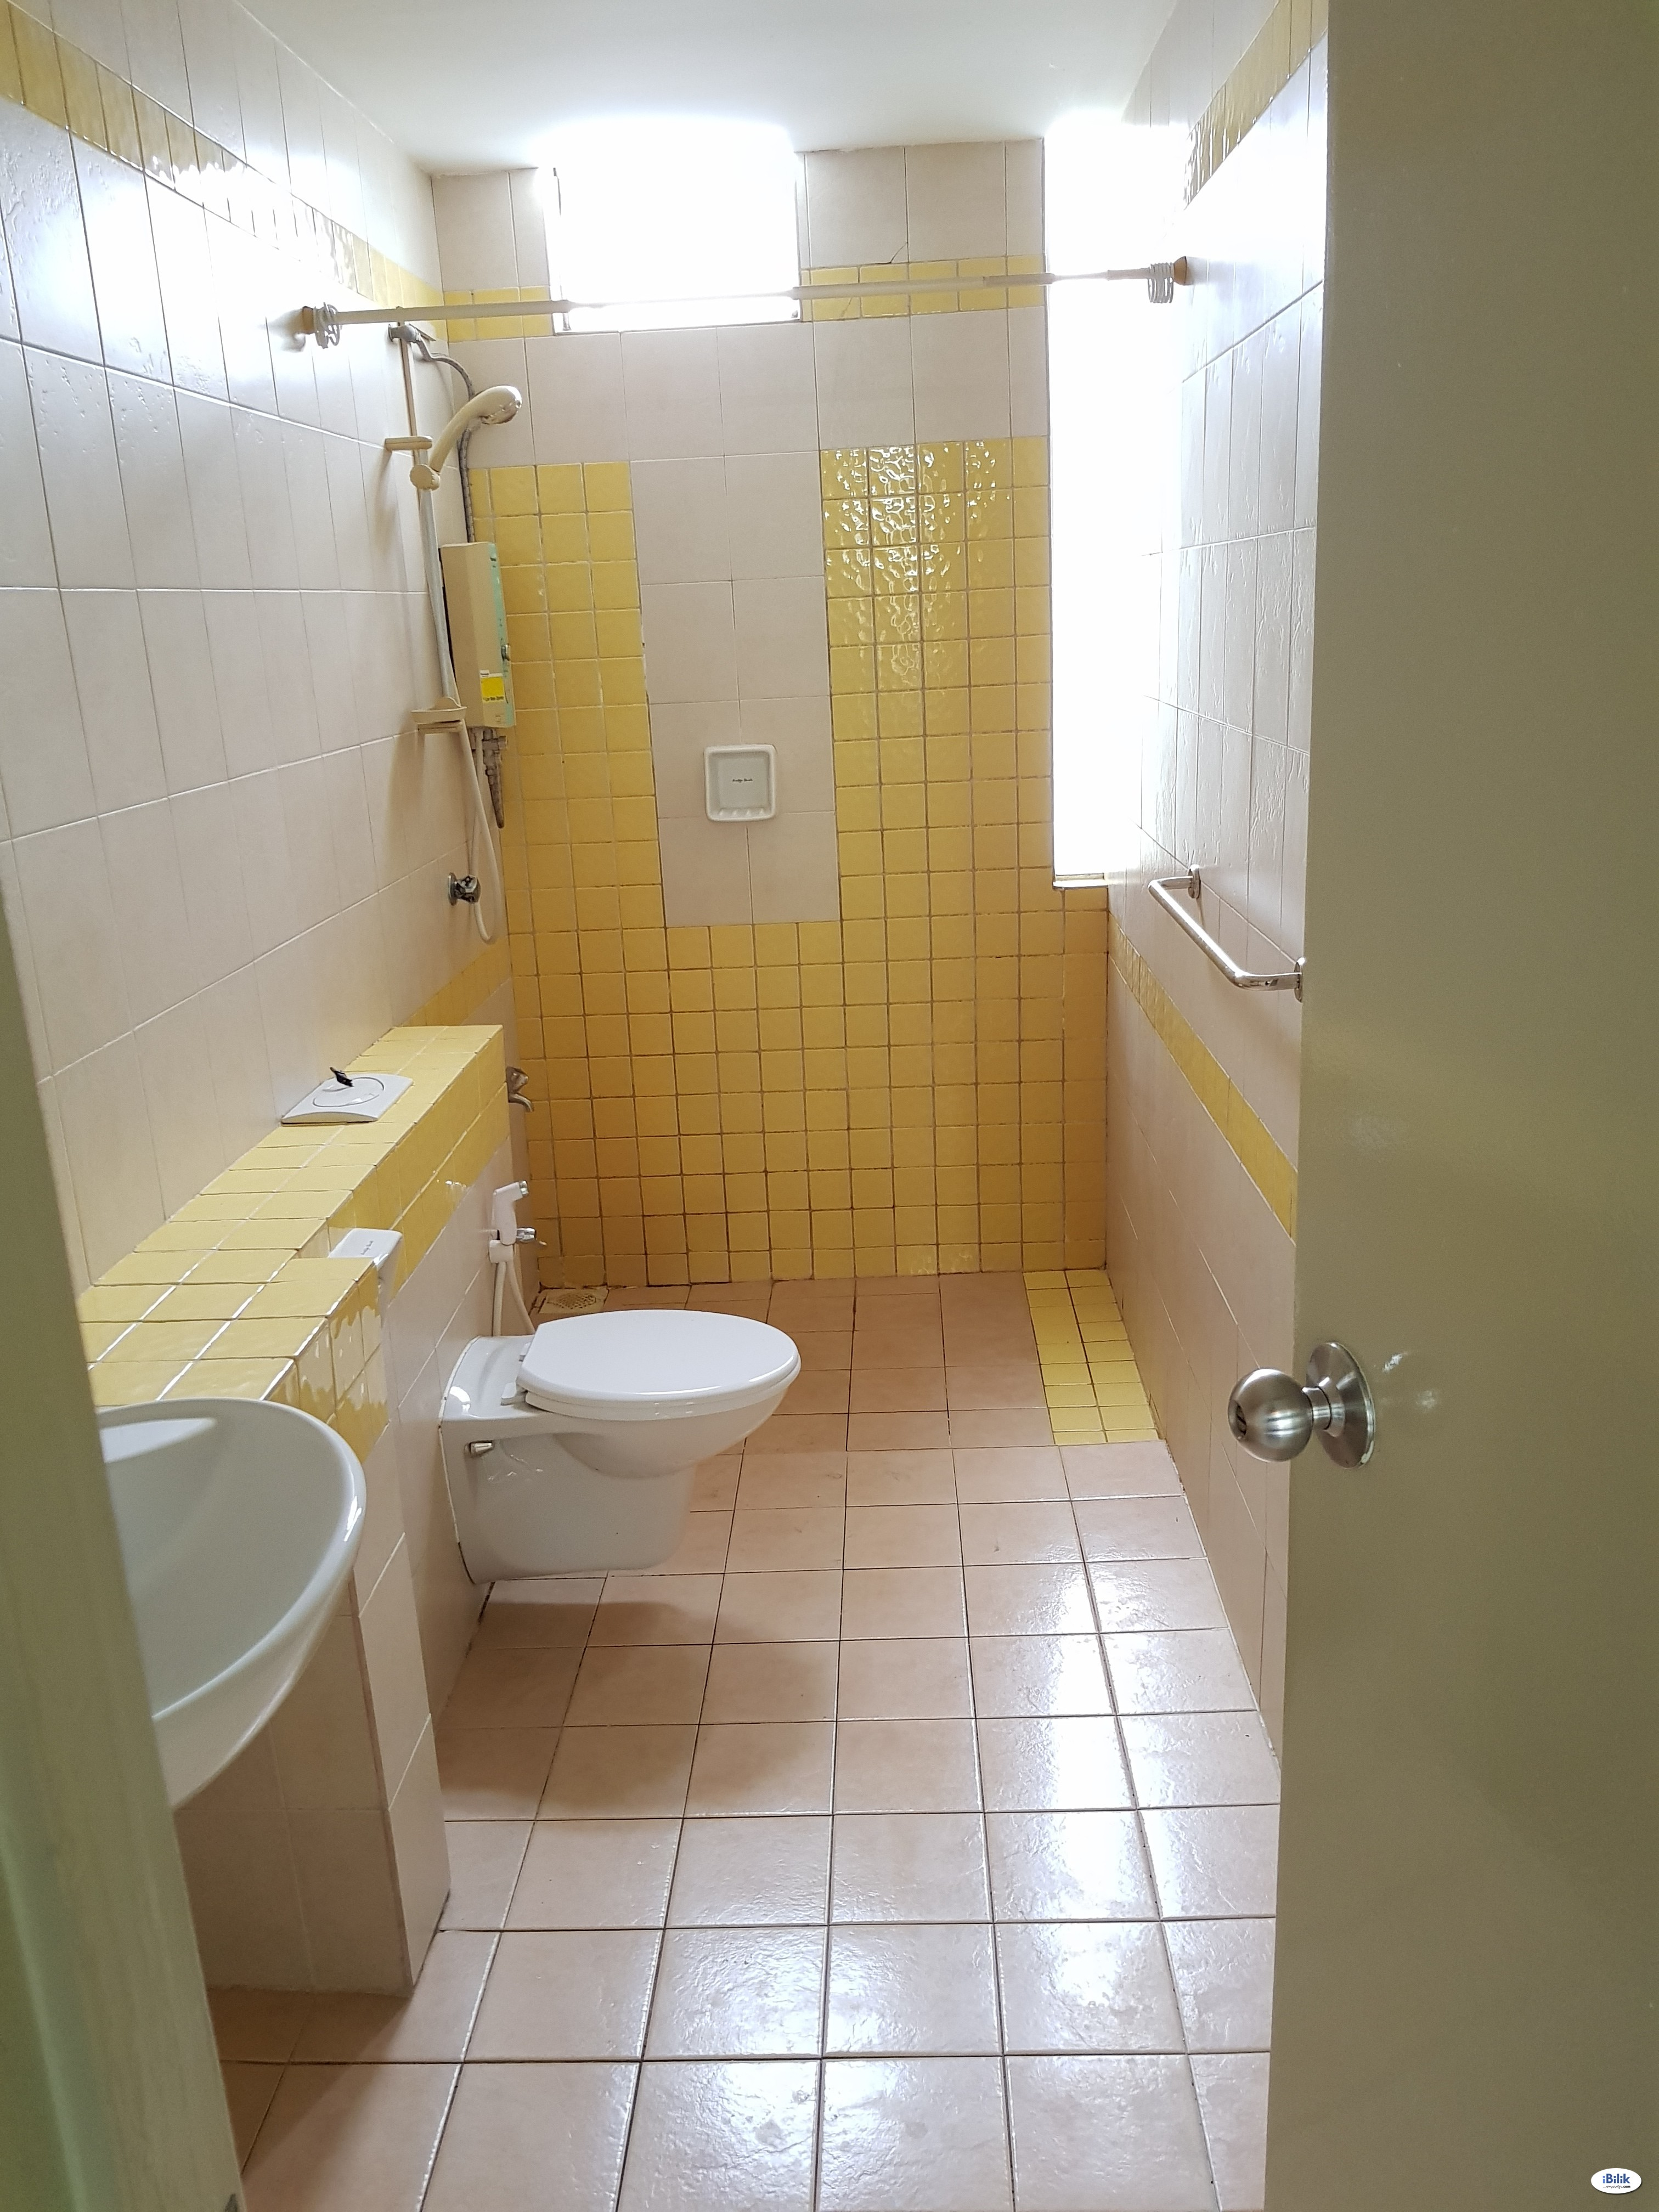 Clean & Tidy Middle Room To Let at Cyberia SmartHomes